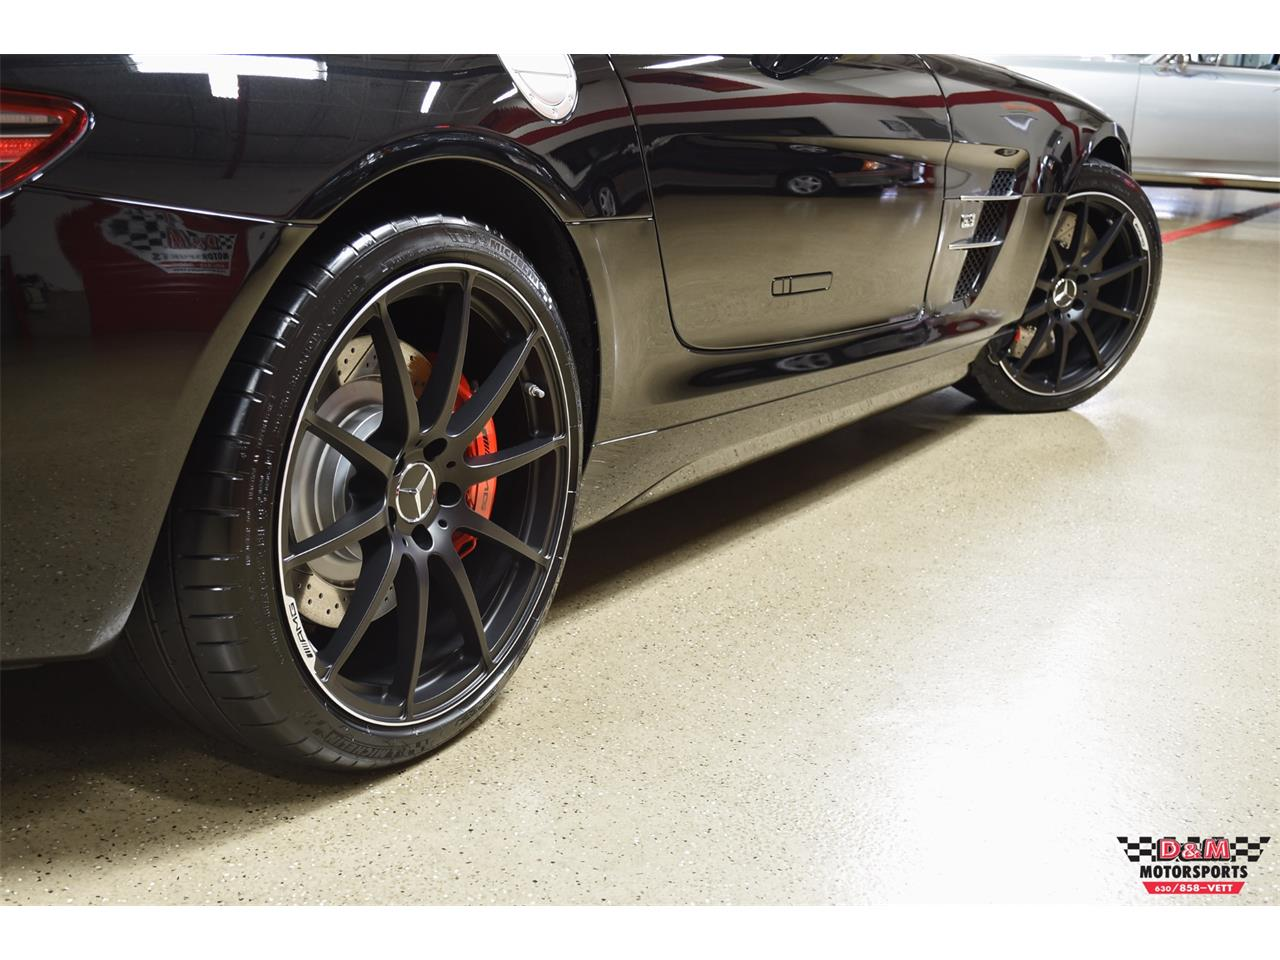 Large Picture of '12 Mercedes-Benz SLS AMG located in Illinois - $199,995.00 Offered by D & M Motorsports - PXCB